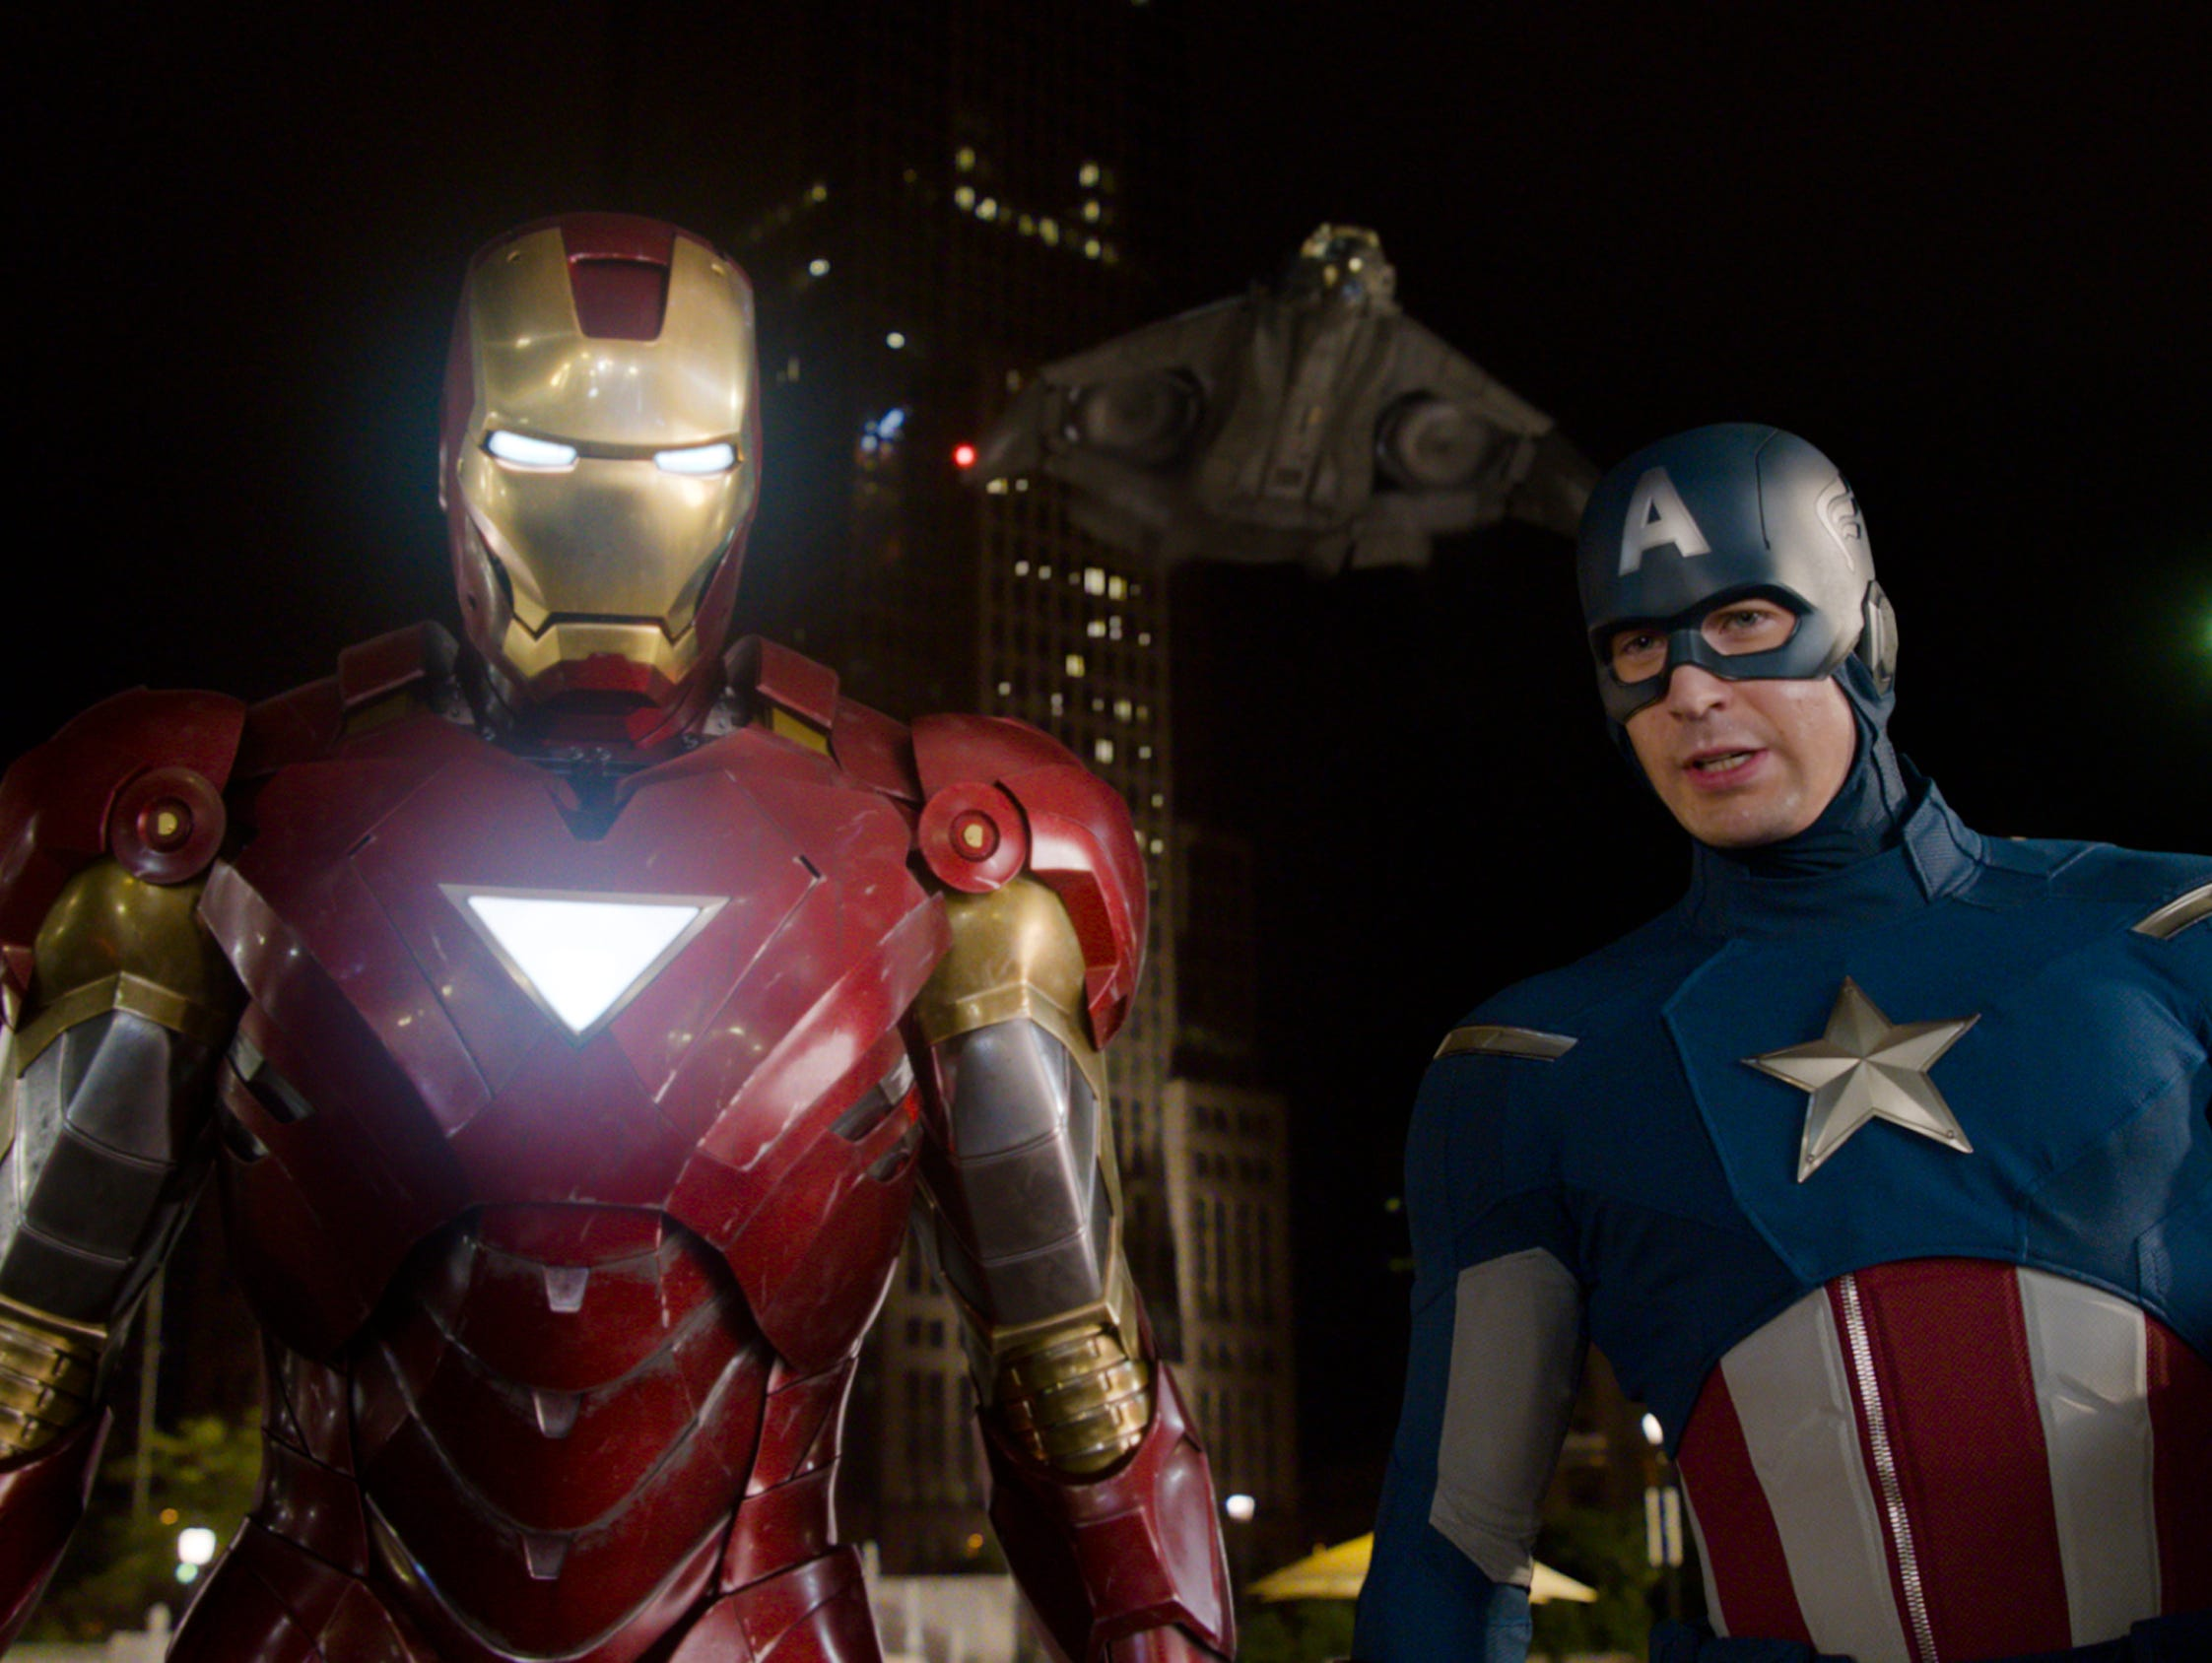 Iron Man, left, and Captain America in a scene from 'The Avengers.'